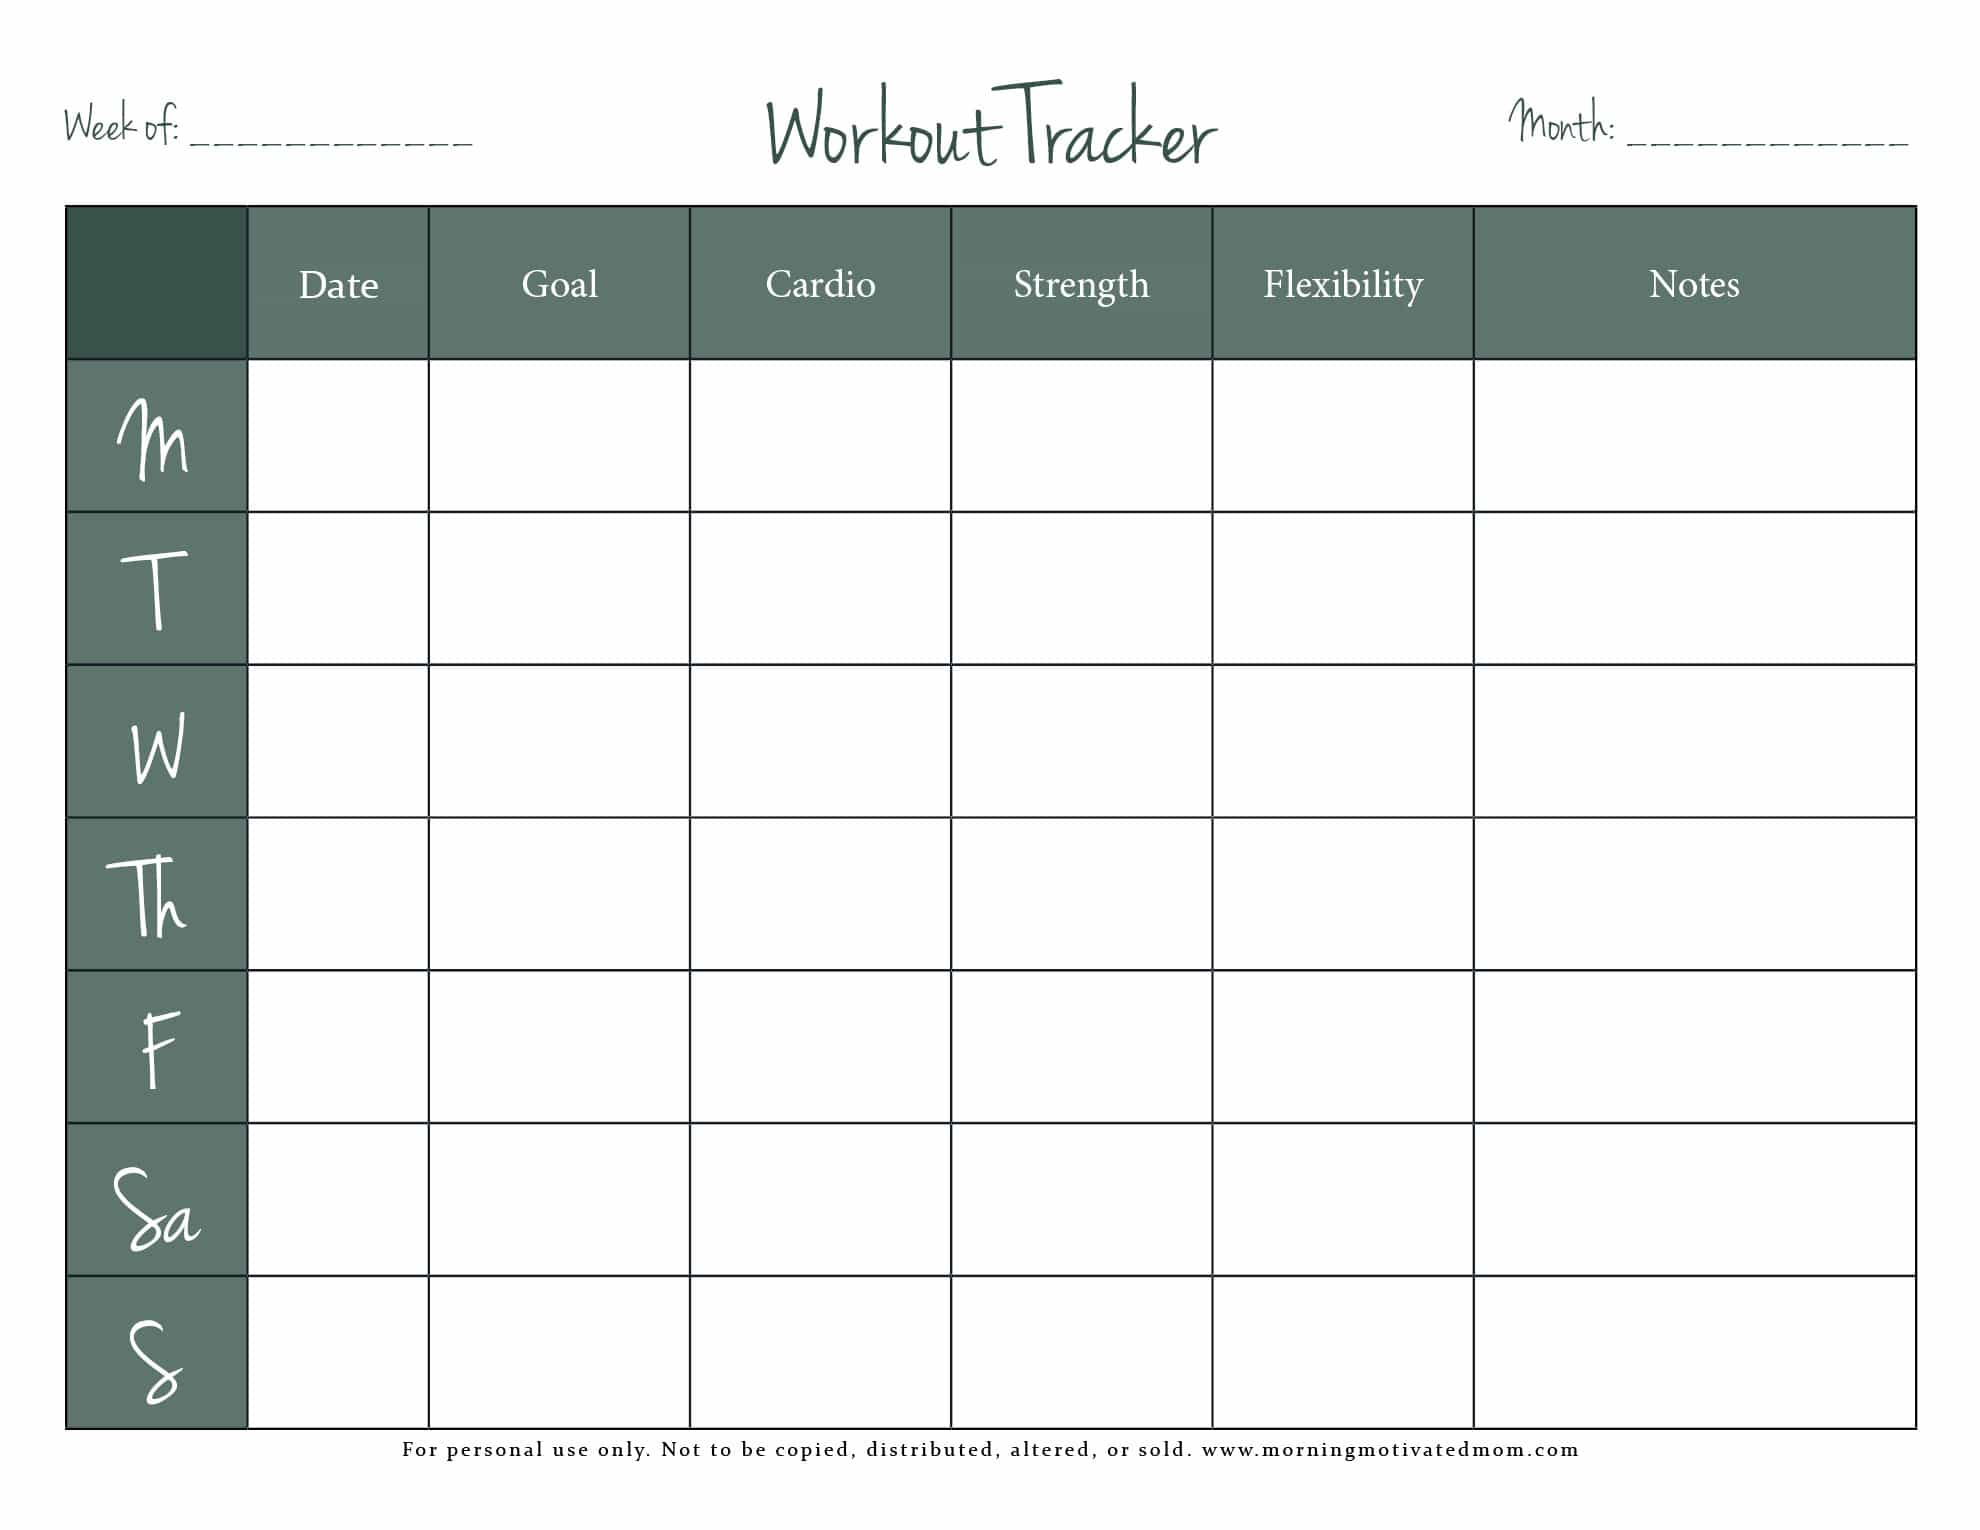 photograph relating to Workout Tracker Printable known as Free of charge Physical fitness Tracker Printable Early morning Impressed Mother